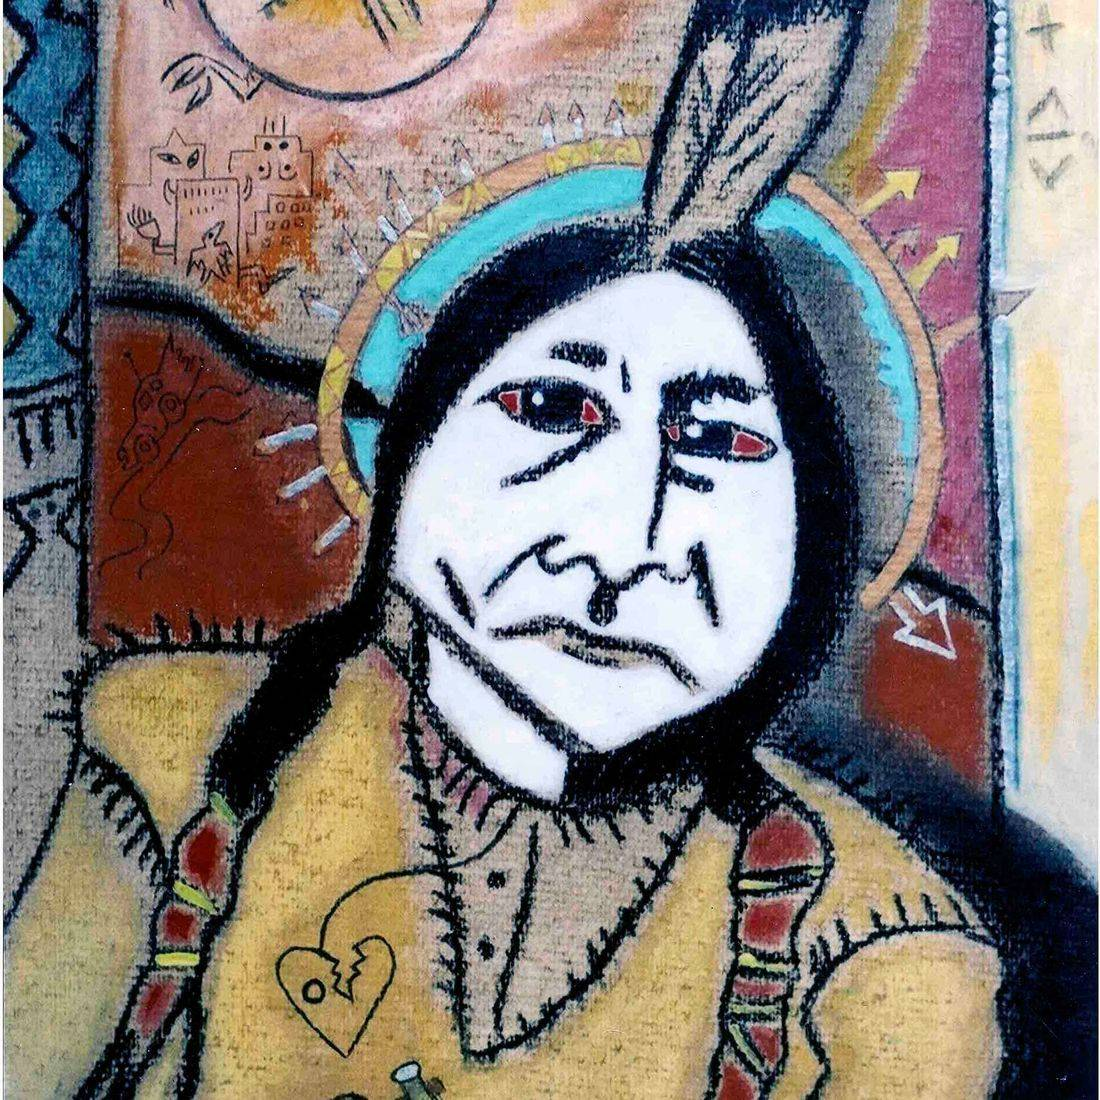 Sitting Bull, Medicine Man, Vision, Custer's Last Stand, Sioux